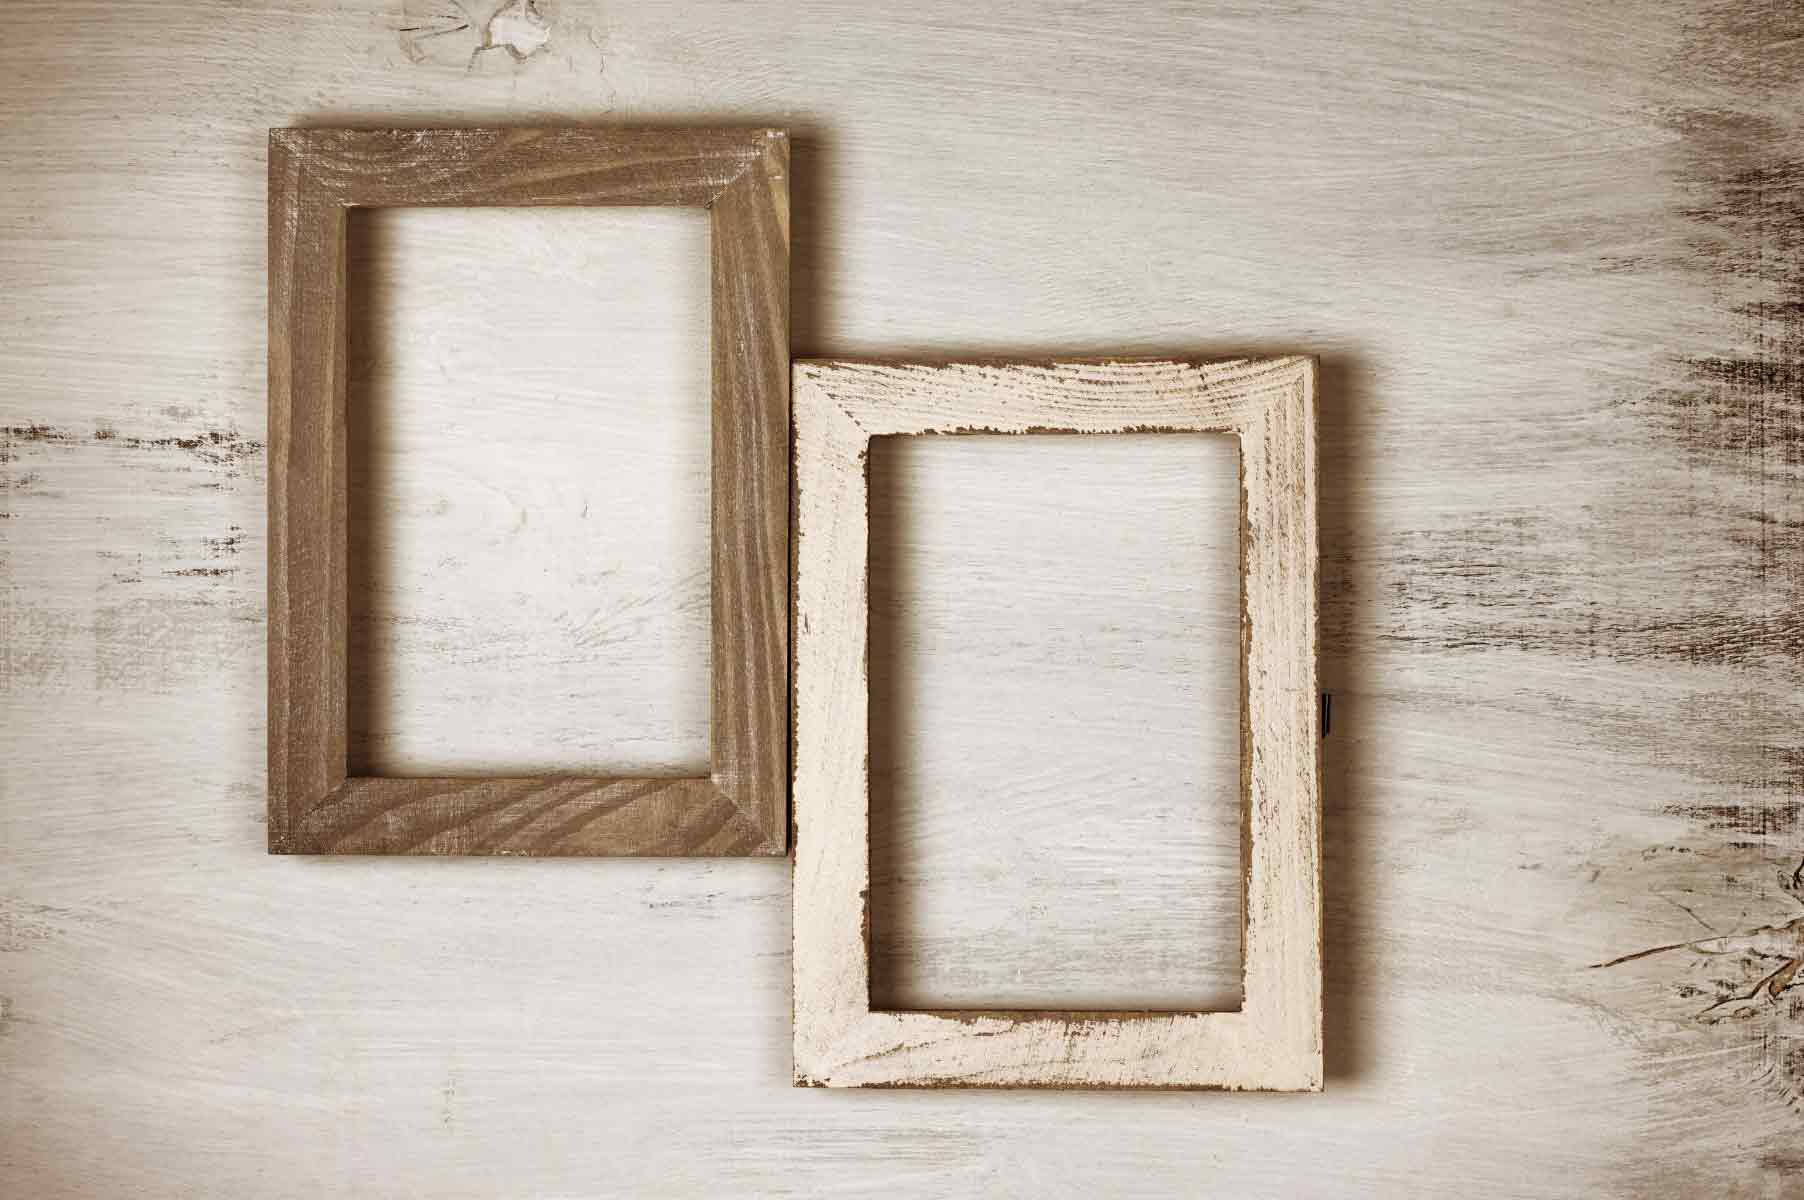 Shabby chic picture frames custom picture frames your home or office dcor will get cozy with the help of one of our shabby chic picture frames jeuxipadfo Images